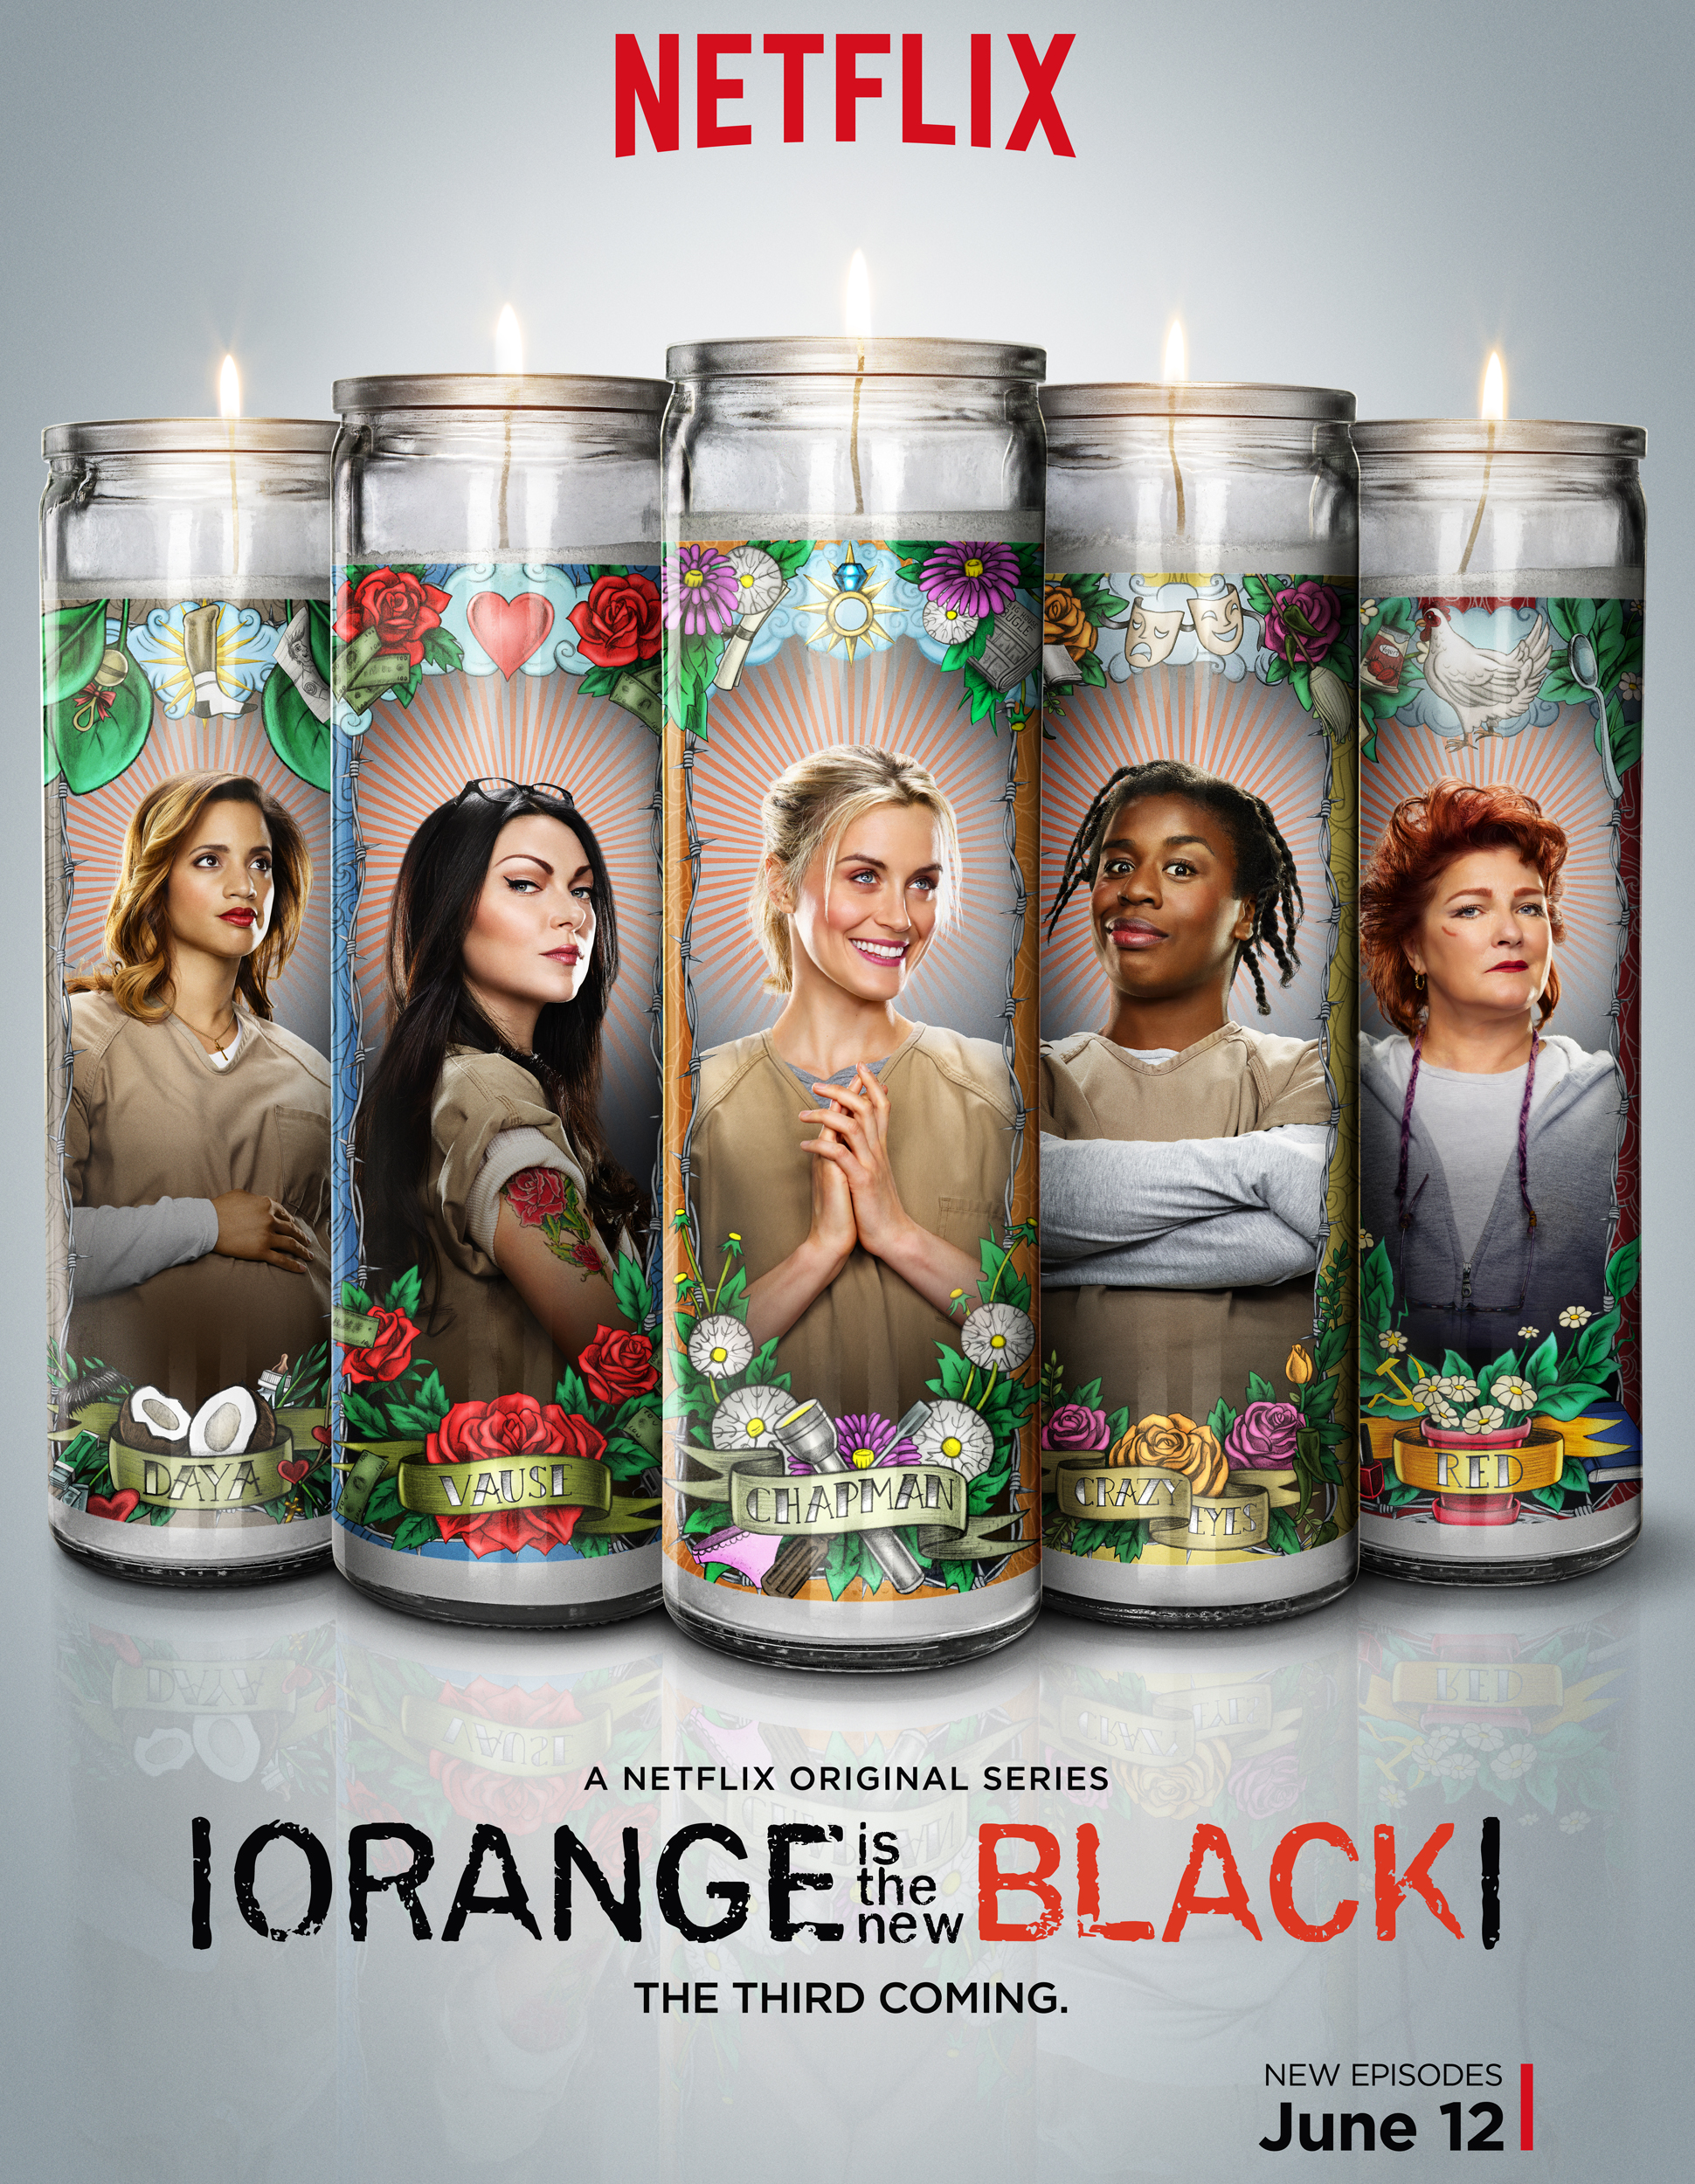 Orange is the New Black (candle poster)